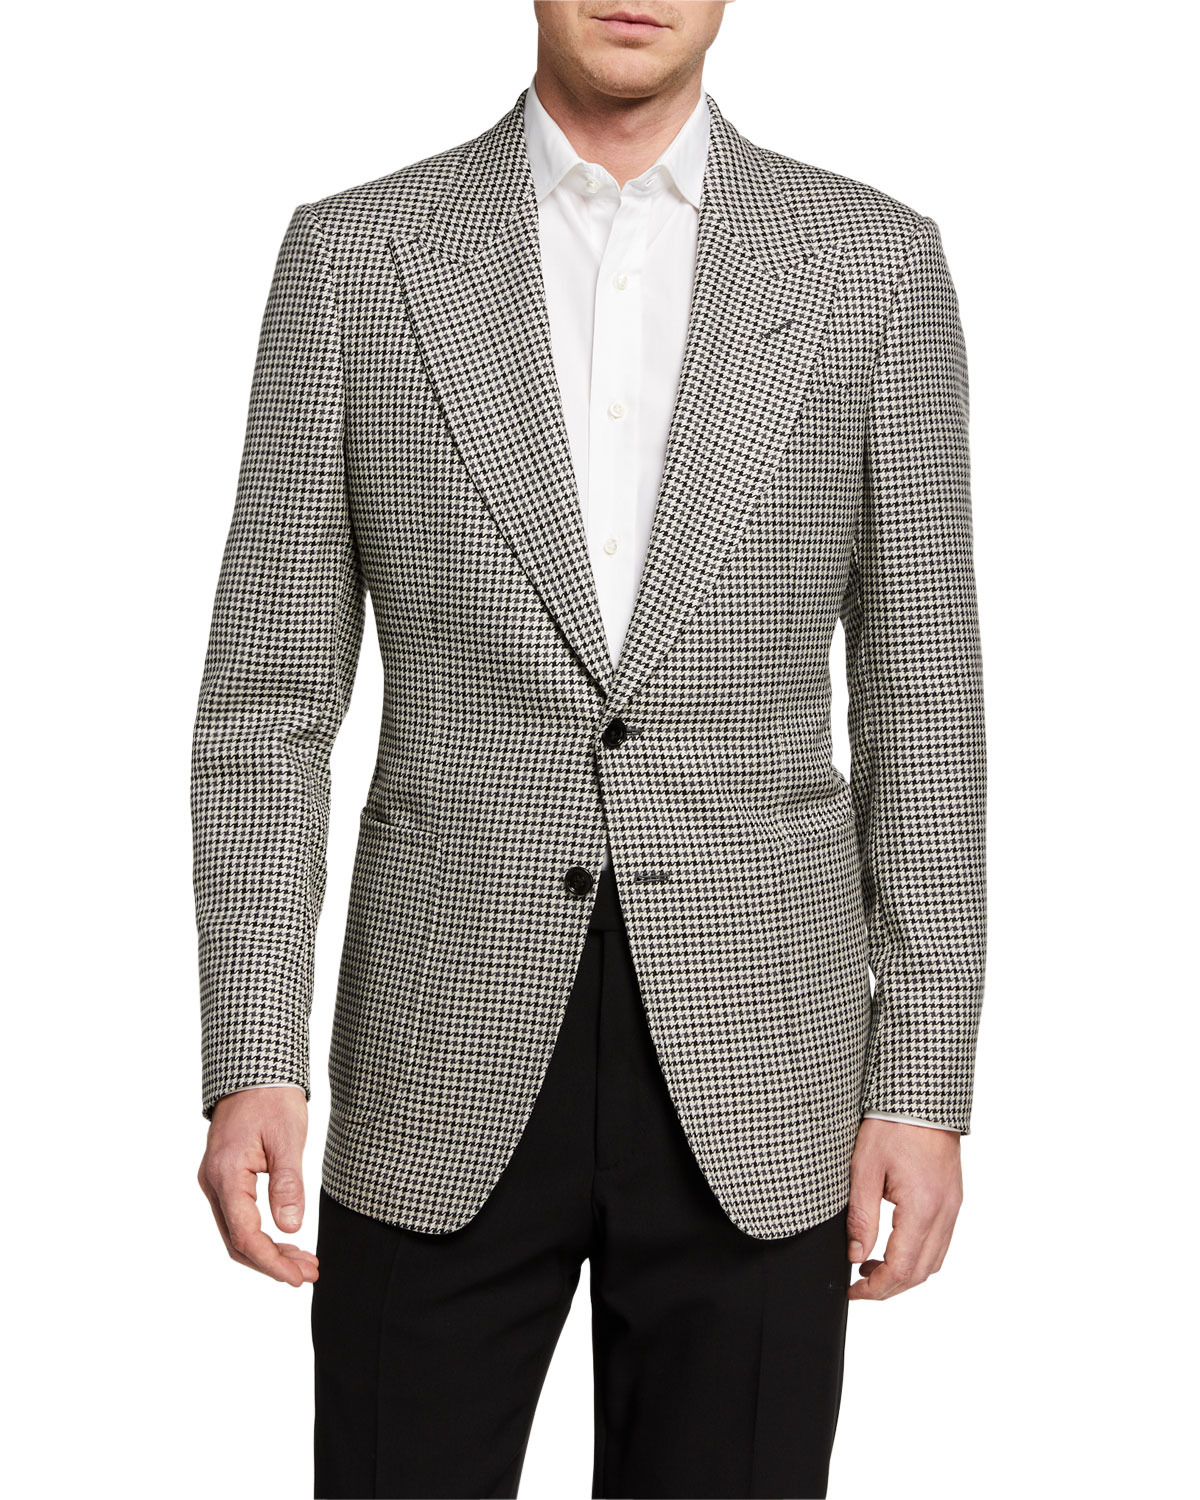 TOM FORD Men's Shelton Tattersall Two-Button Jacket